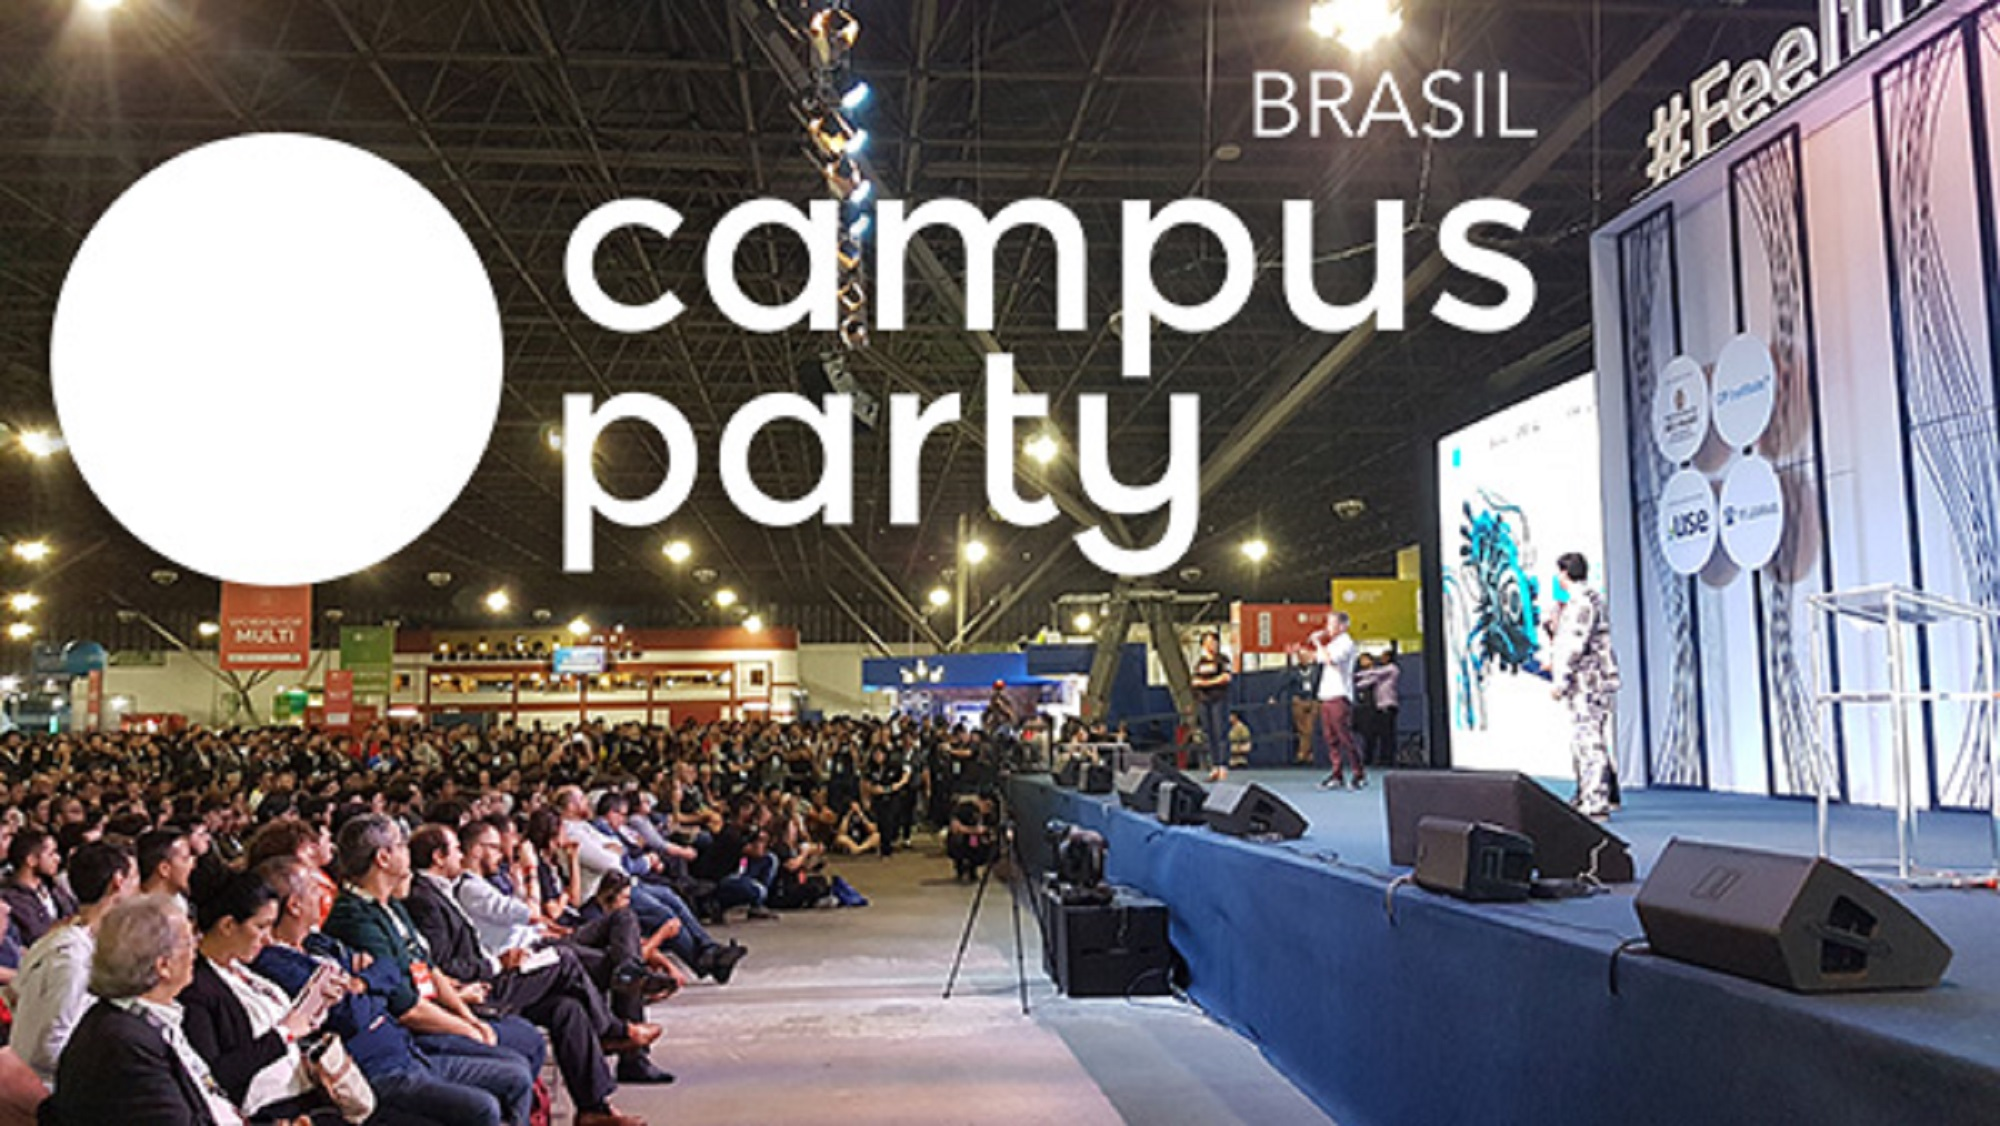 campus_party_mural2.jpg